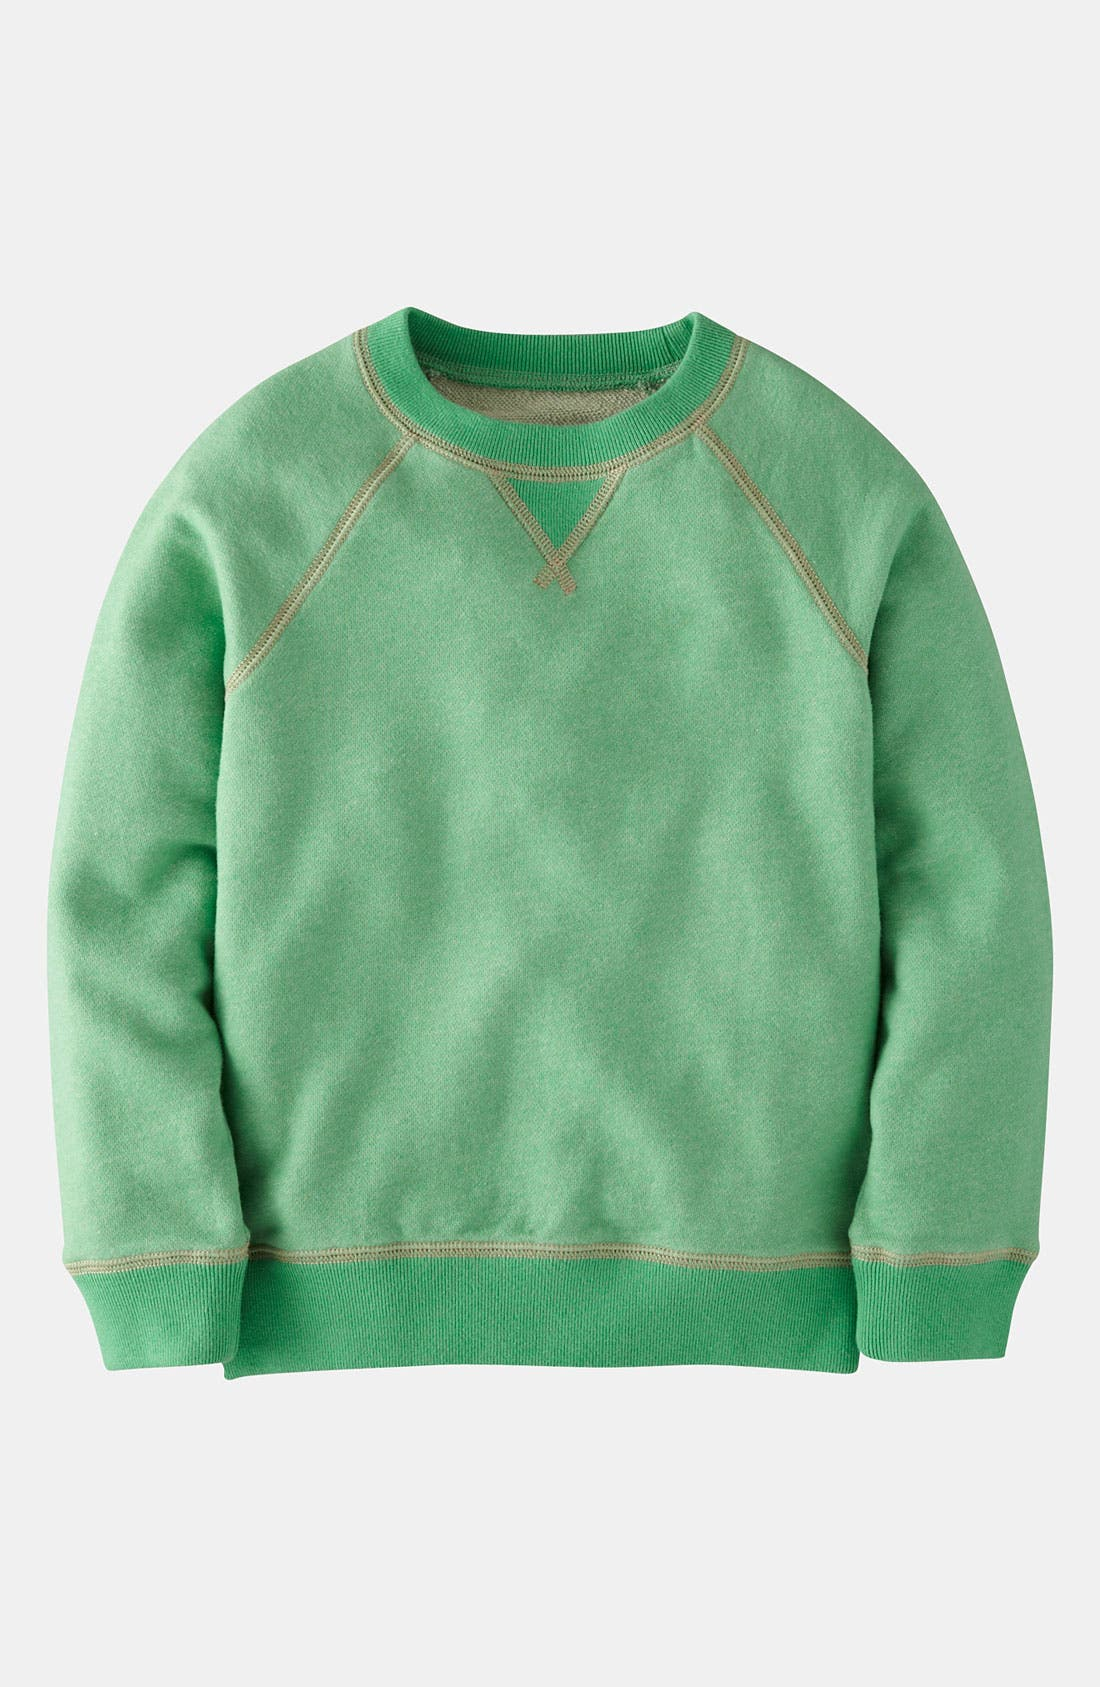 Alternate Image 1 Selected - Mini Boden Crewneck Sweatshirt (Little Boys & Big Boys)